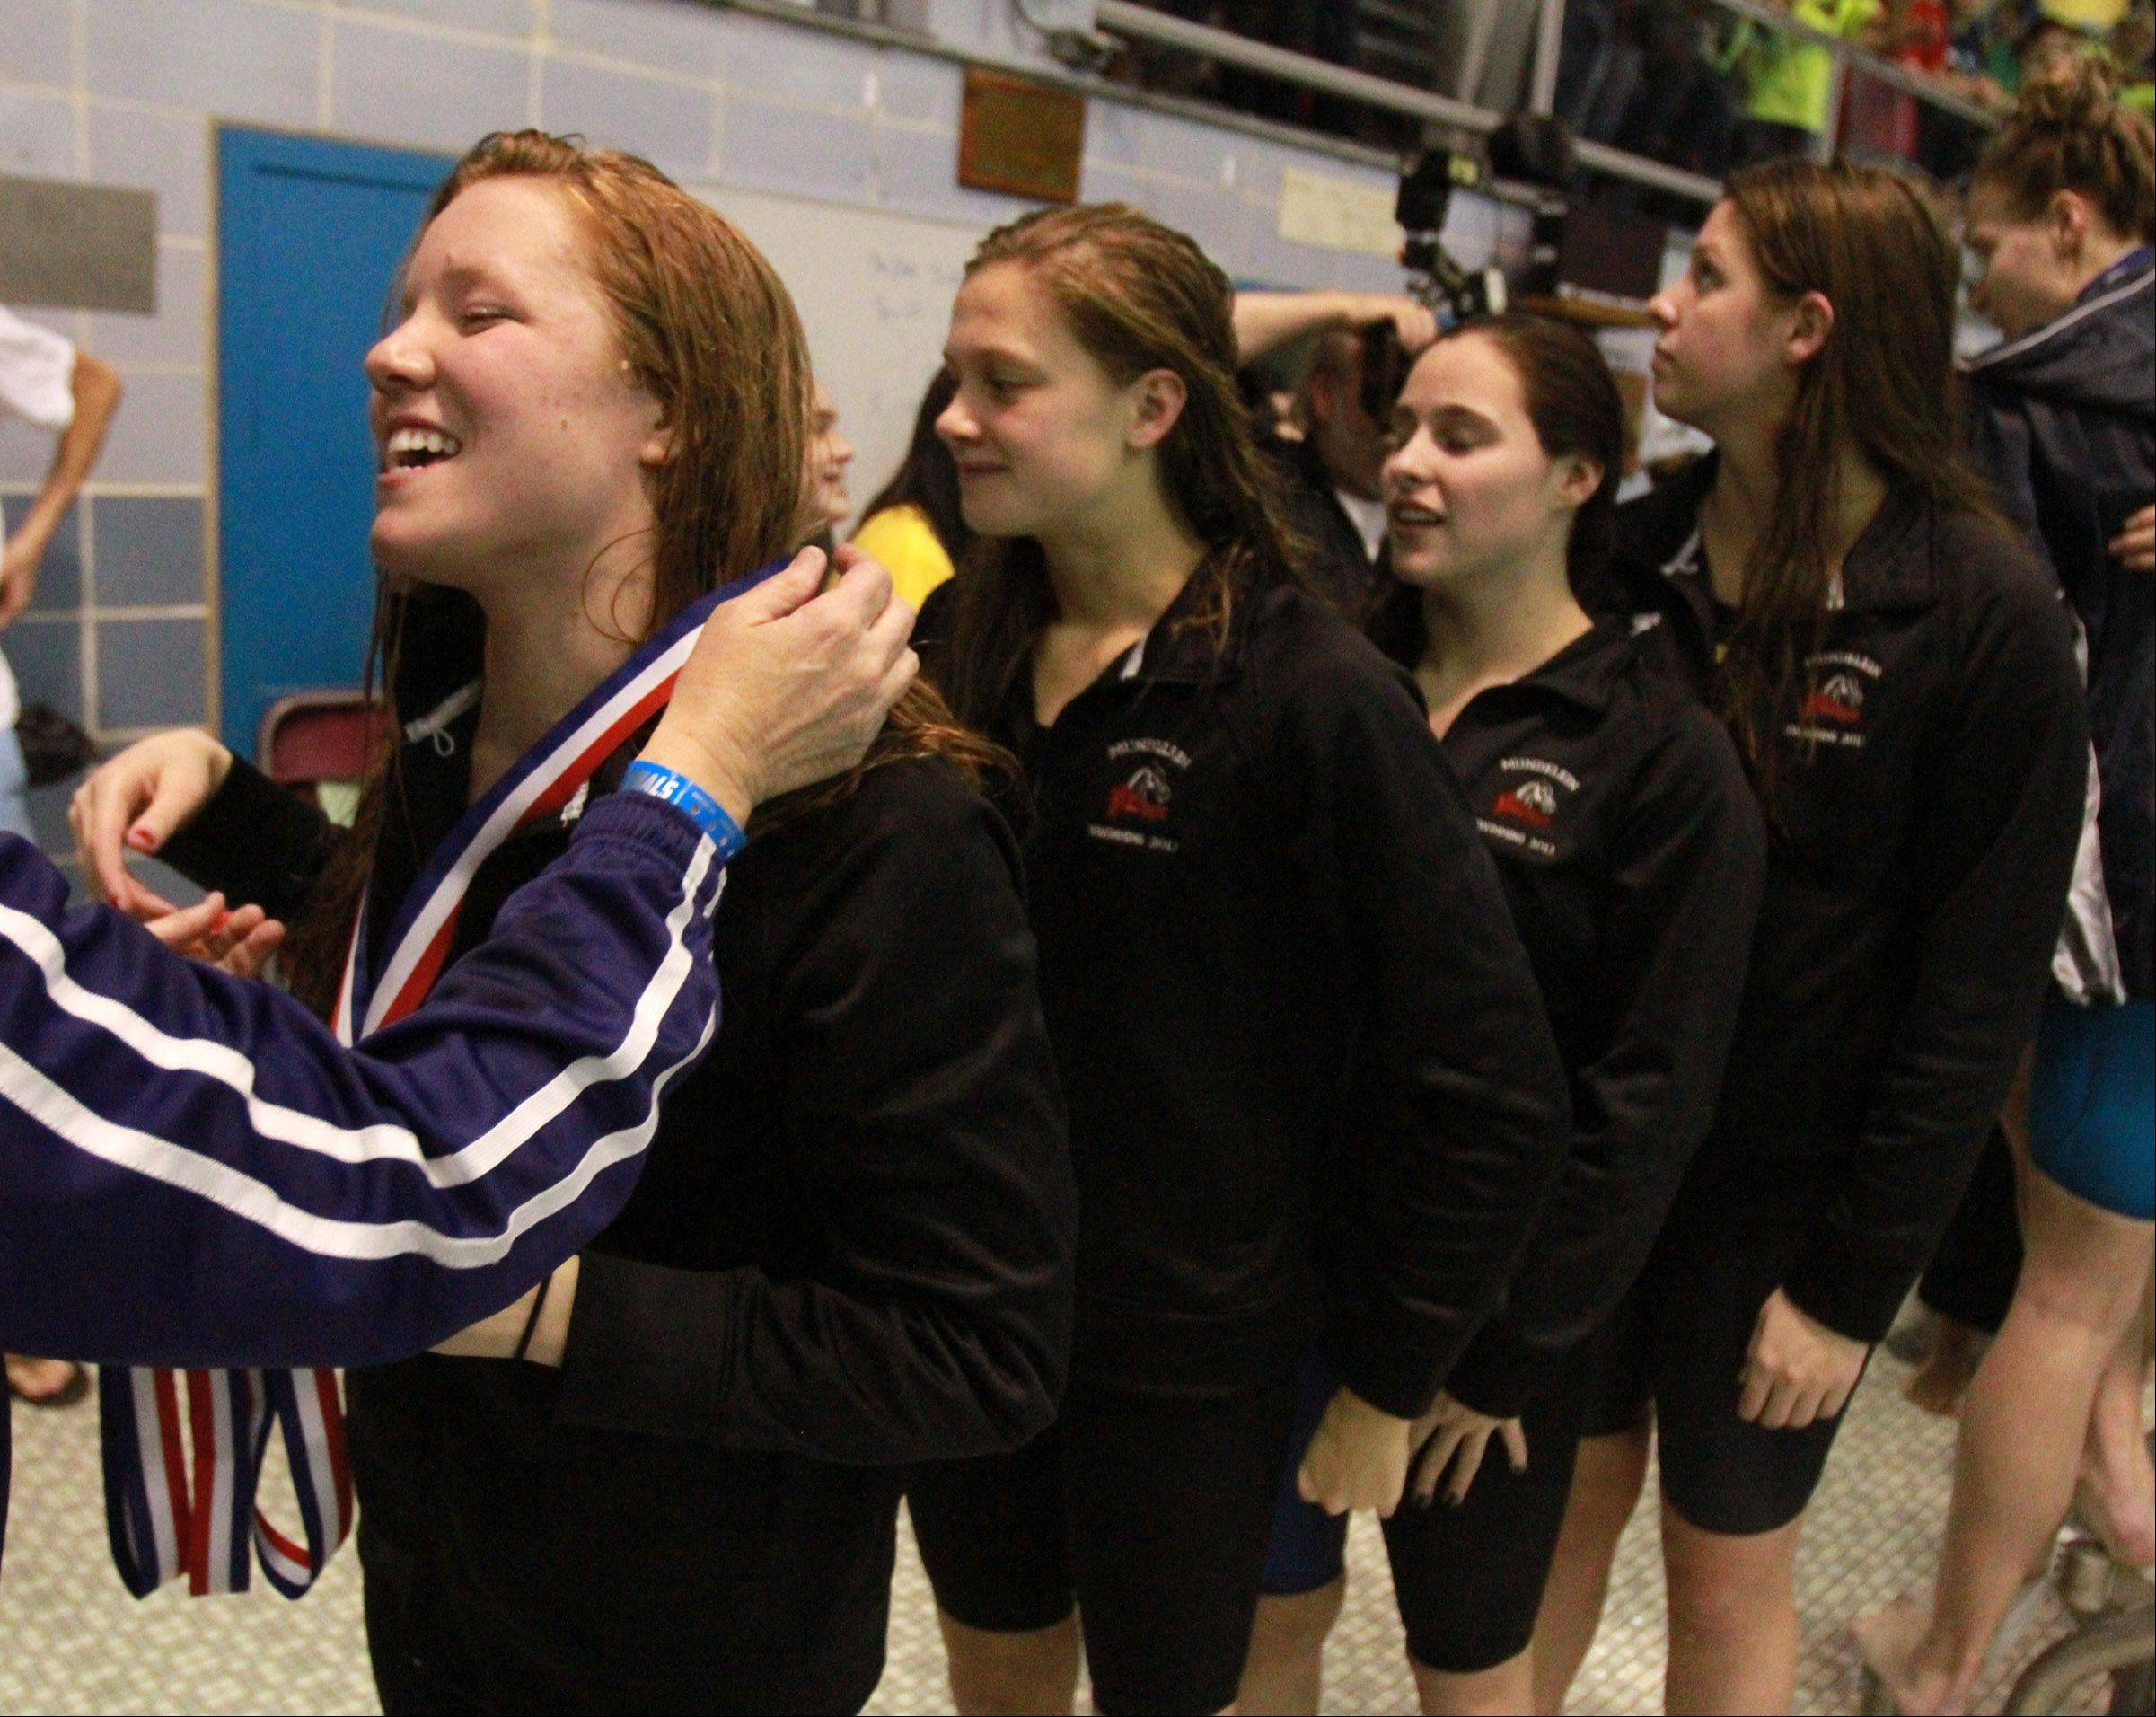 Mundelein's Erin Falconer, Karrie Kozokar, Rachel Robb and Jennifer Kordik receives their medals for fourth-place finish in the 400-yard freestyle relay at the girls swimming state finals on Saturday at New Trier.